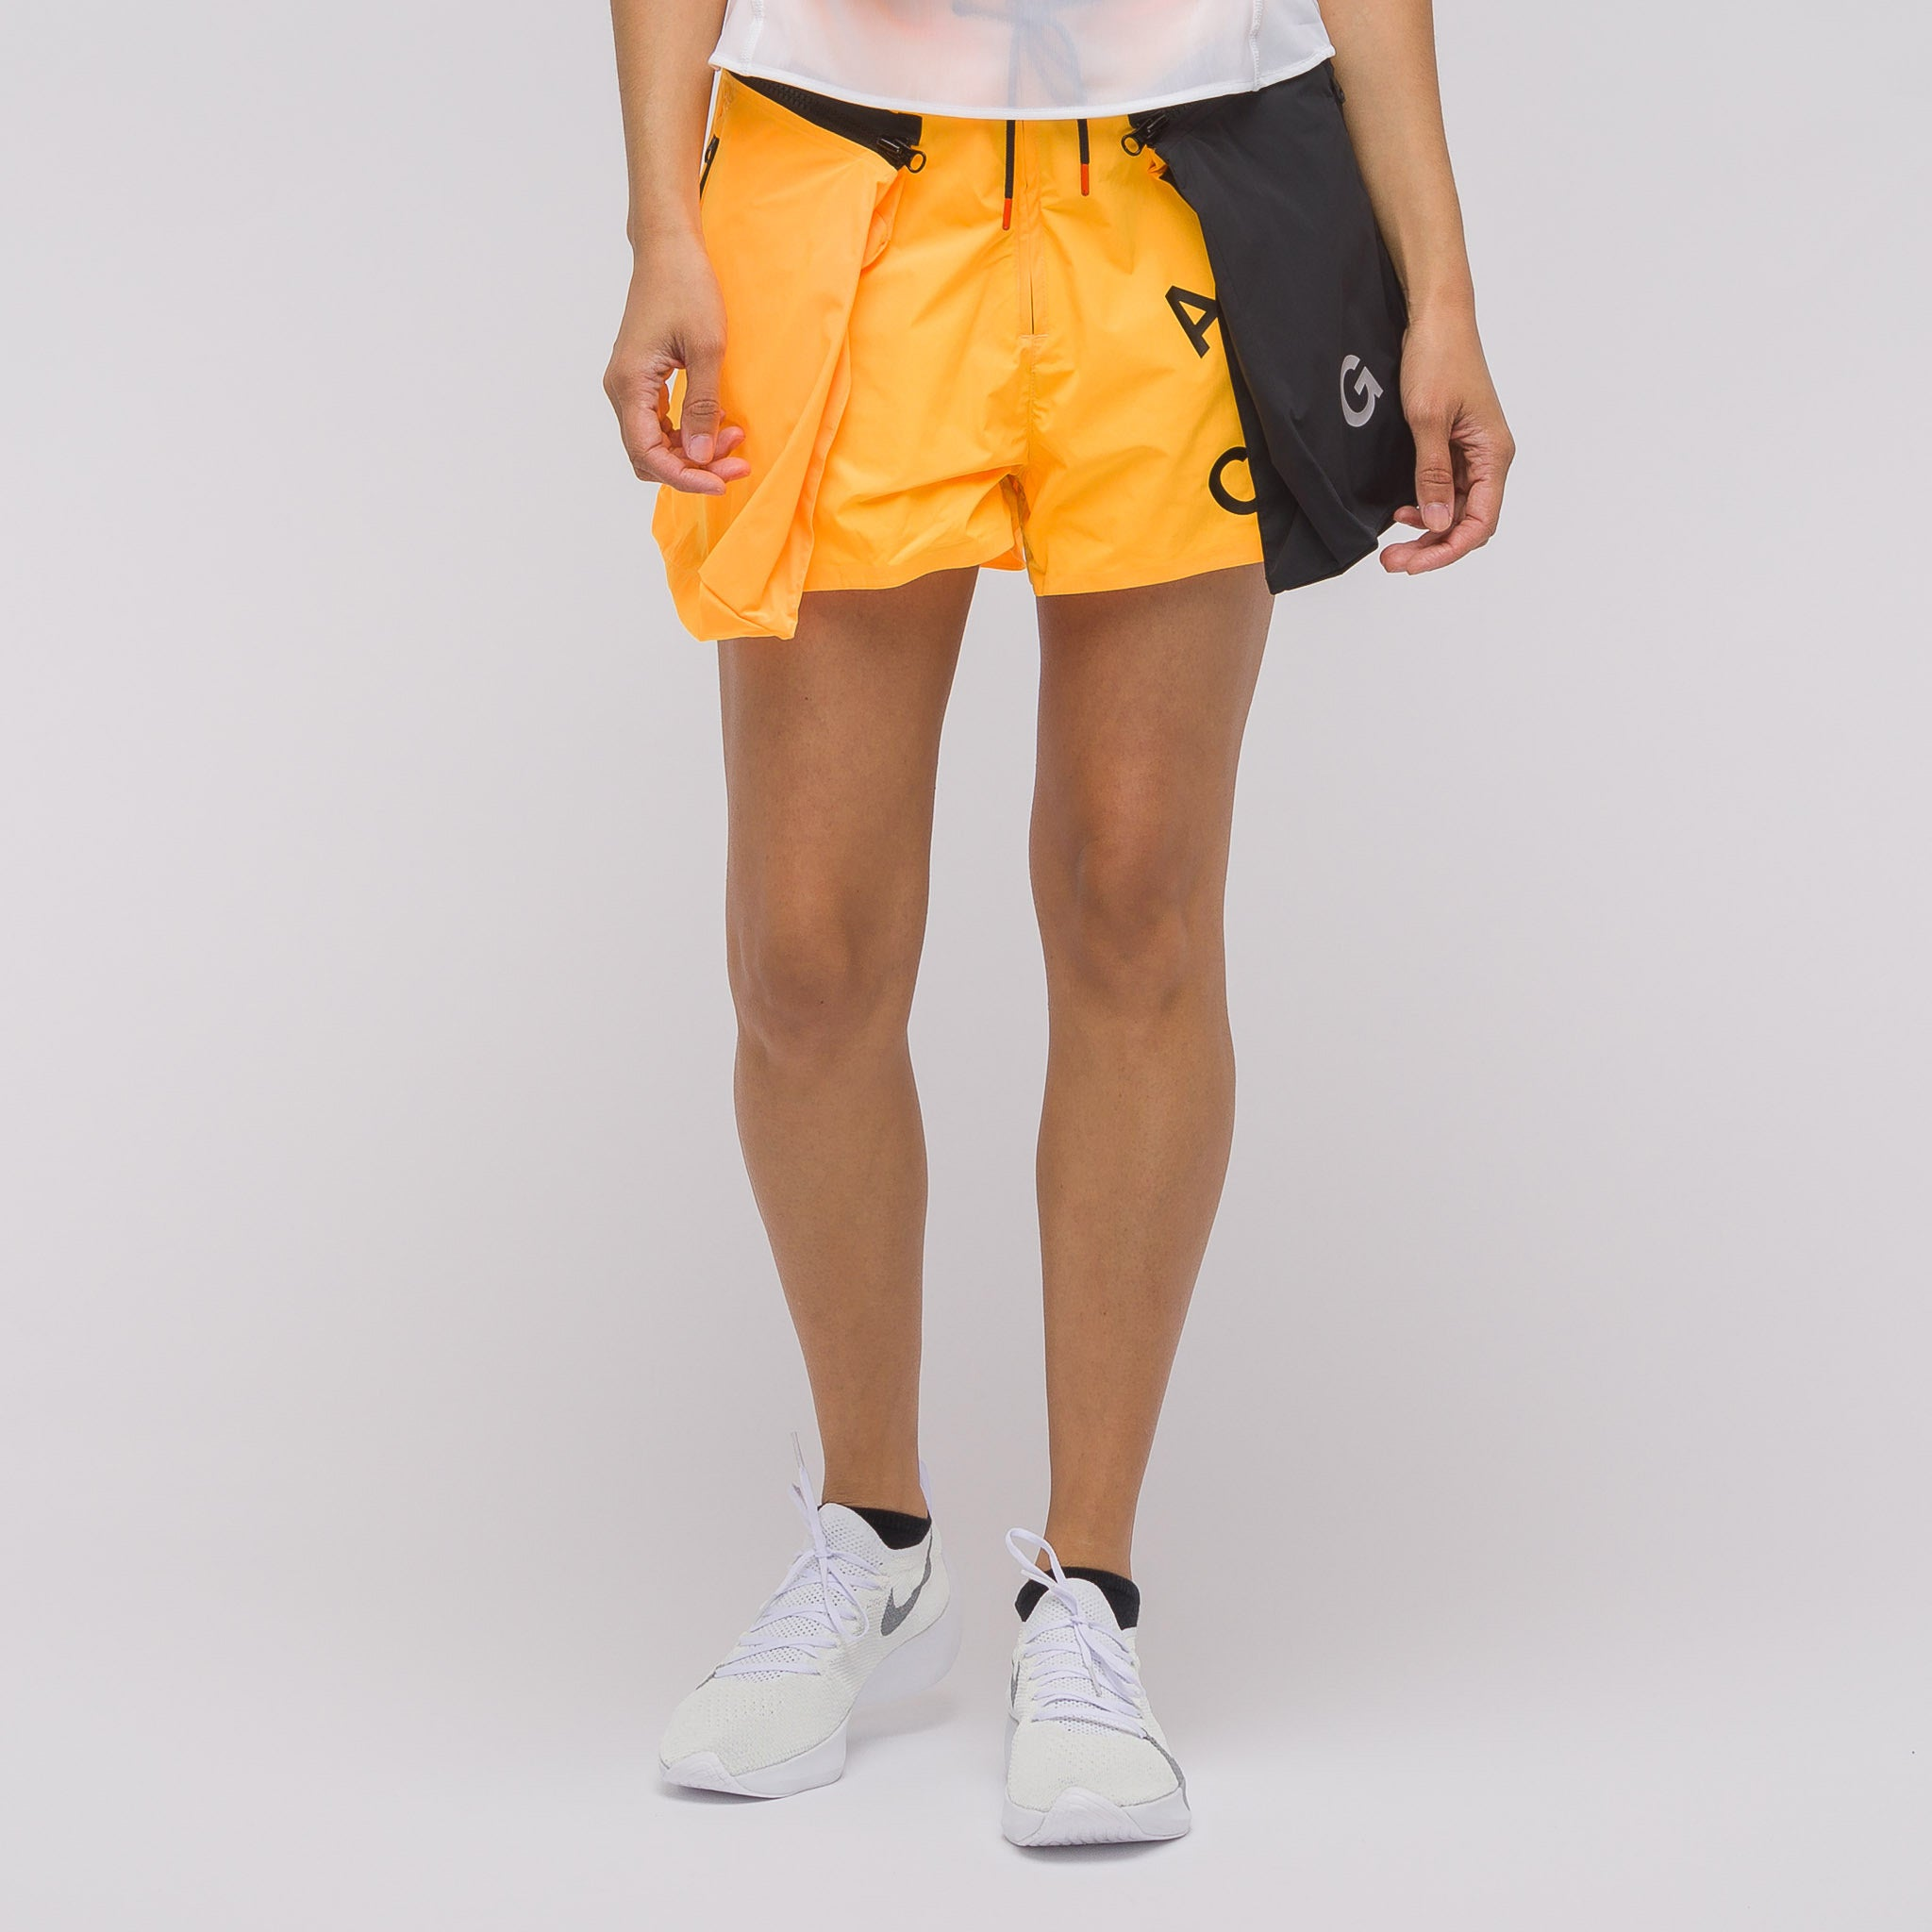 Women's ACG Short in Orange/Grey. NikeLab